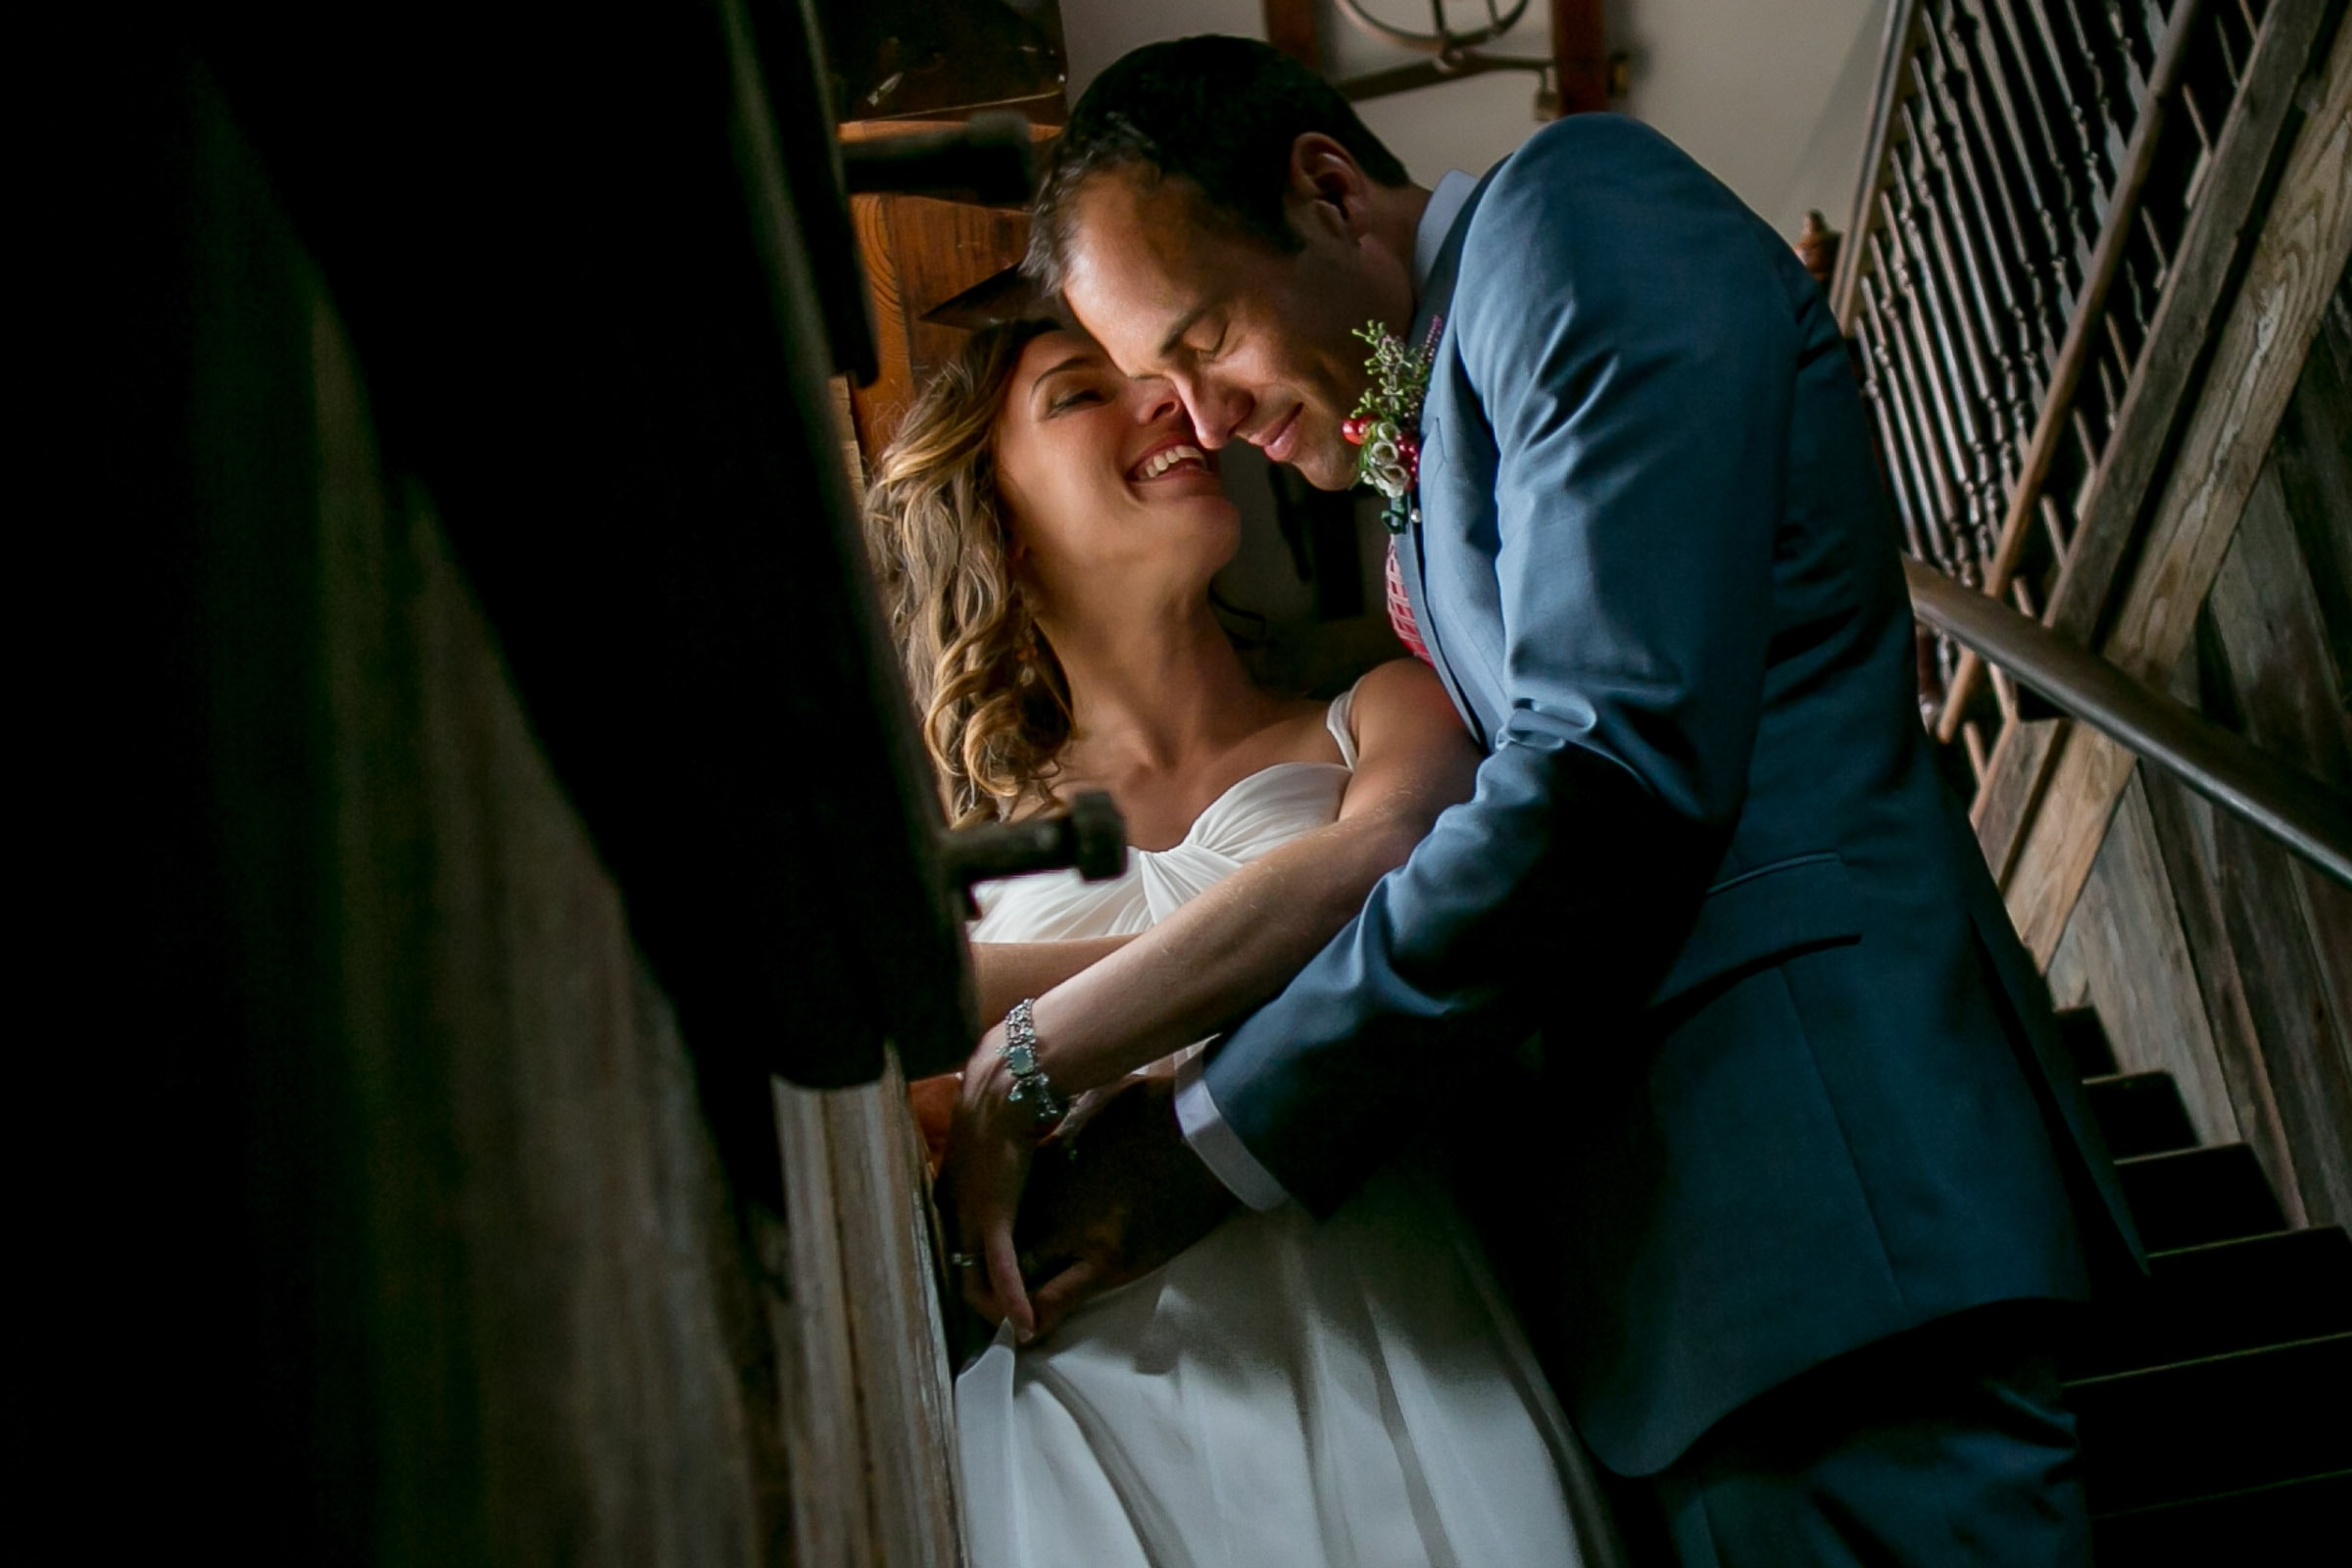 A bride and groom embracing in a barn near a window during their Mendocino Coast wedding at Spring Ranch